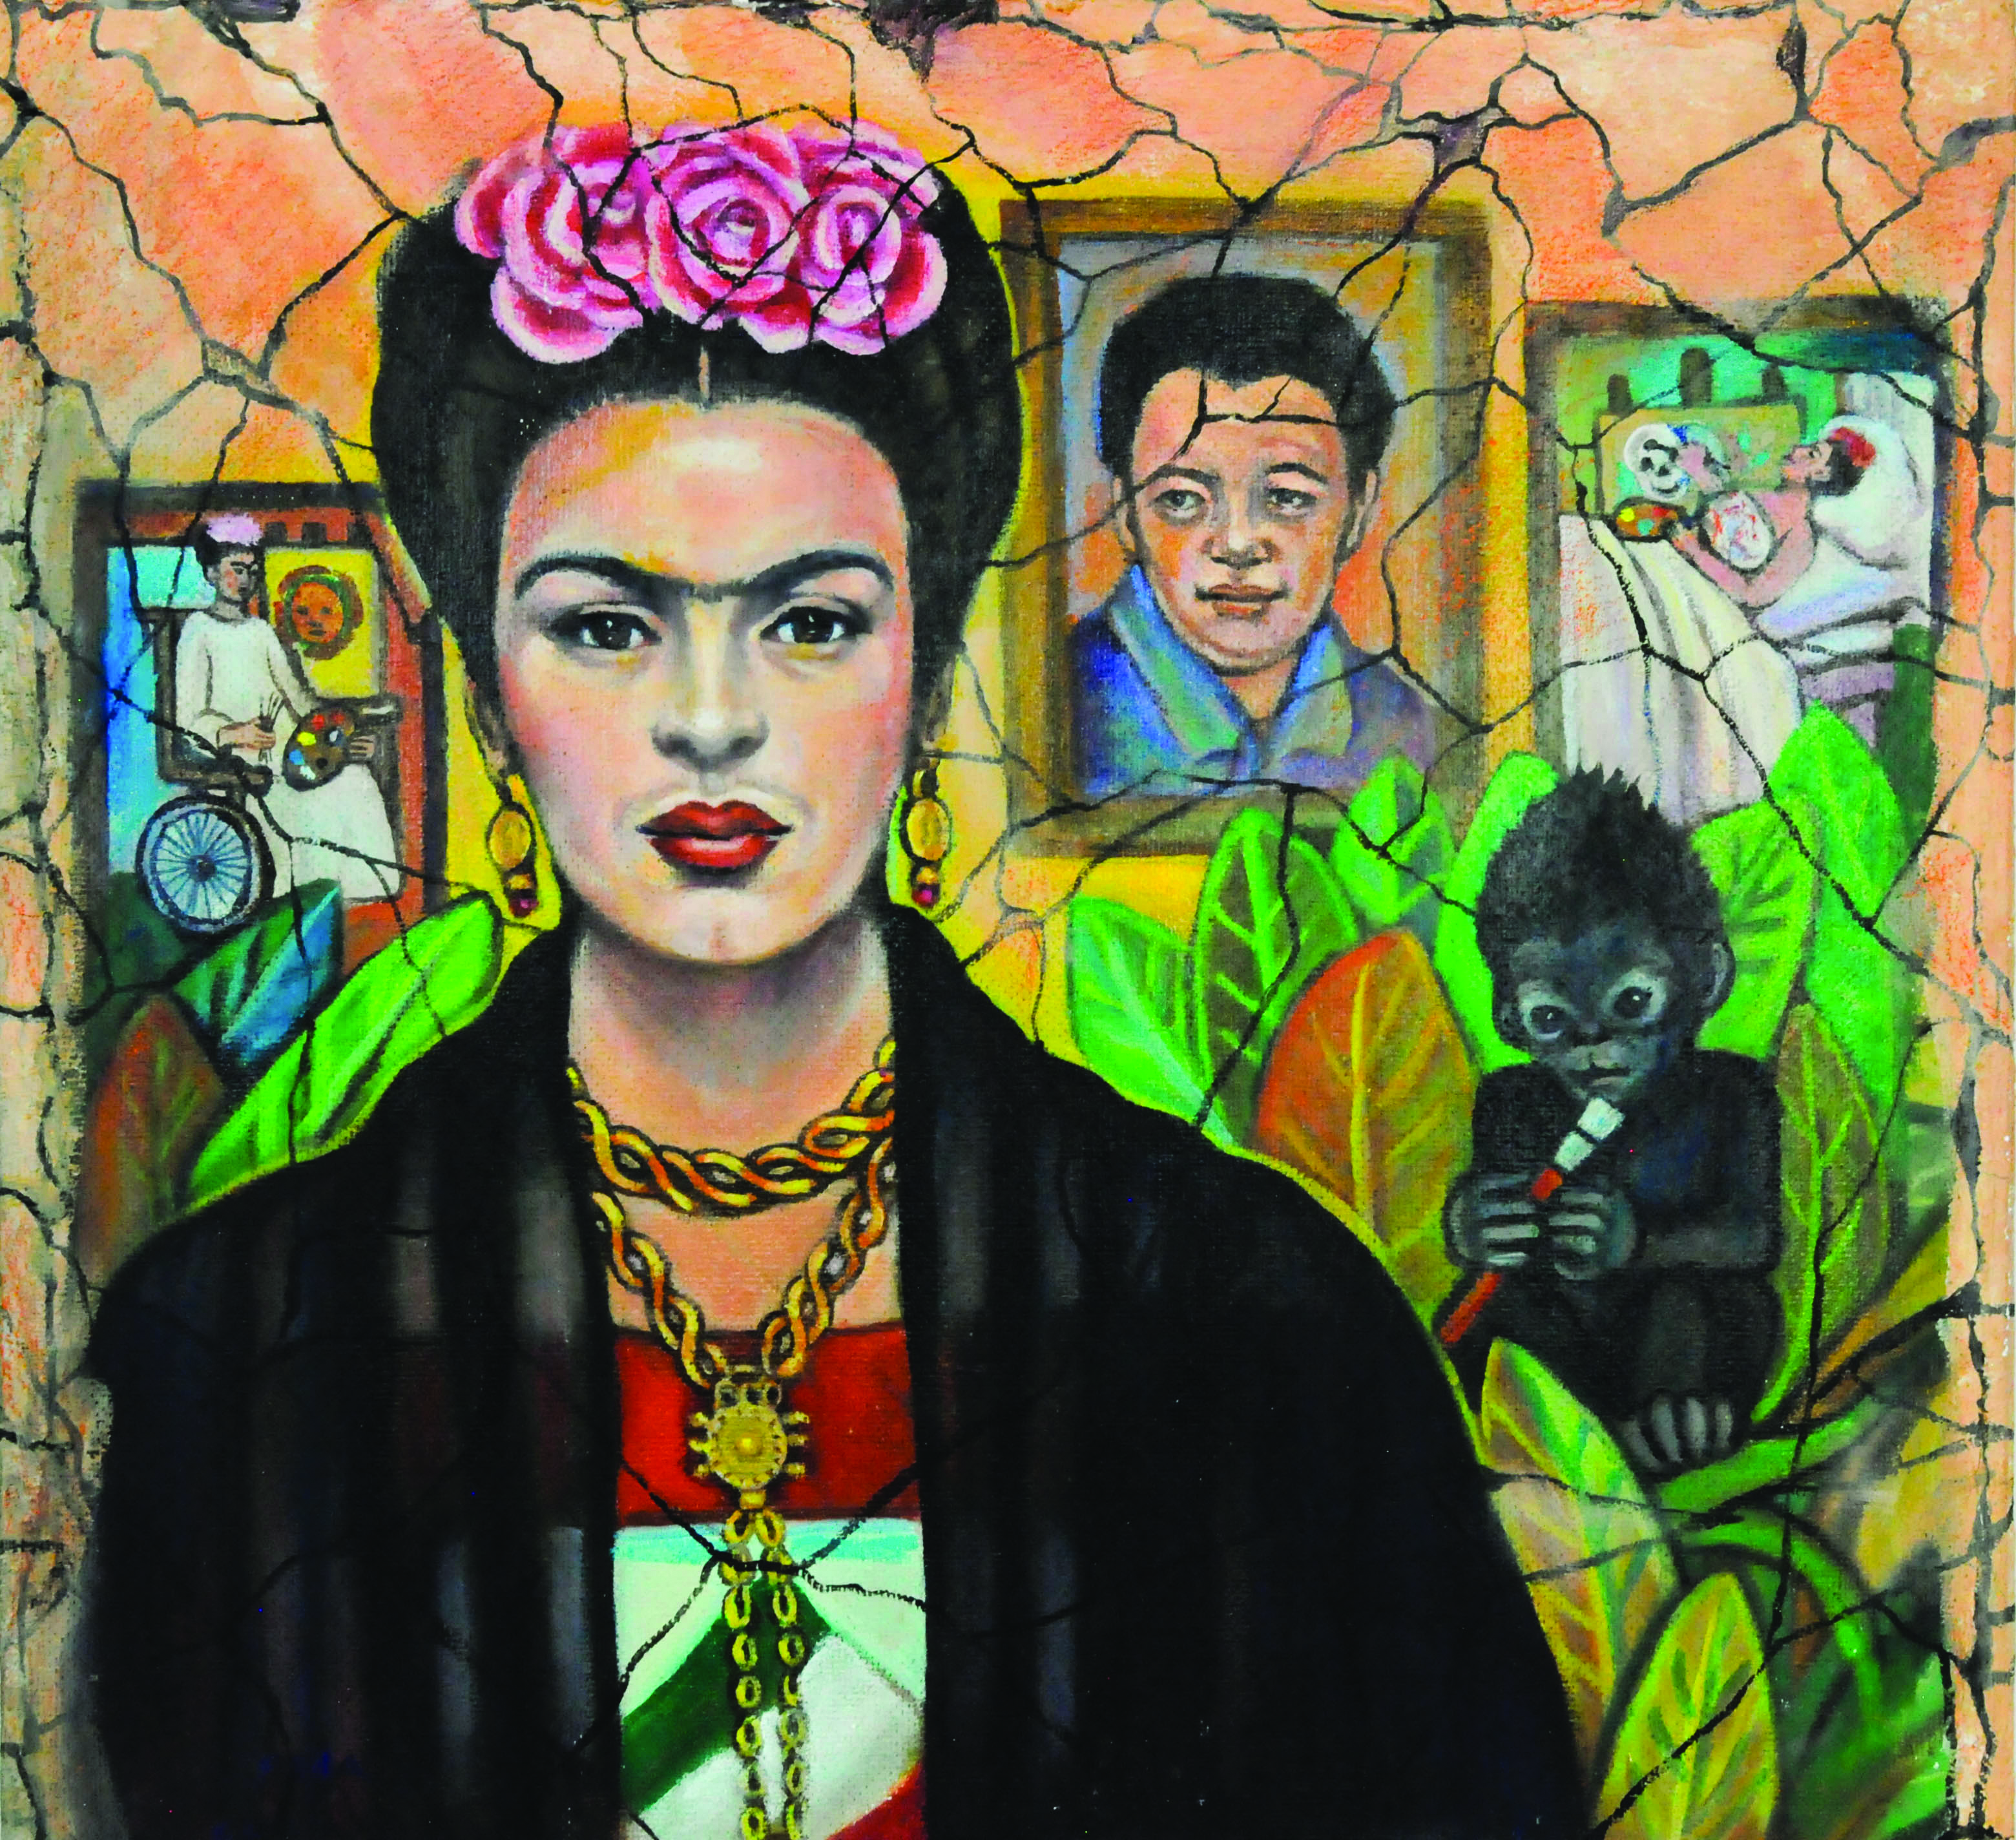 Image of a painting that depicts artist Frida Kahlo in the foreground, wearing pink and red flowers atop her head, and a dress which suggests the Mexican flag. She has a black shawl around her shoulders. In the background are images from Kahlo's life displayed as paintings on the wall behind her, including times of illness in her life.